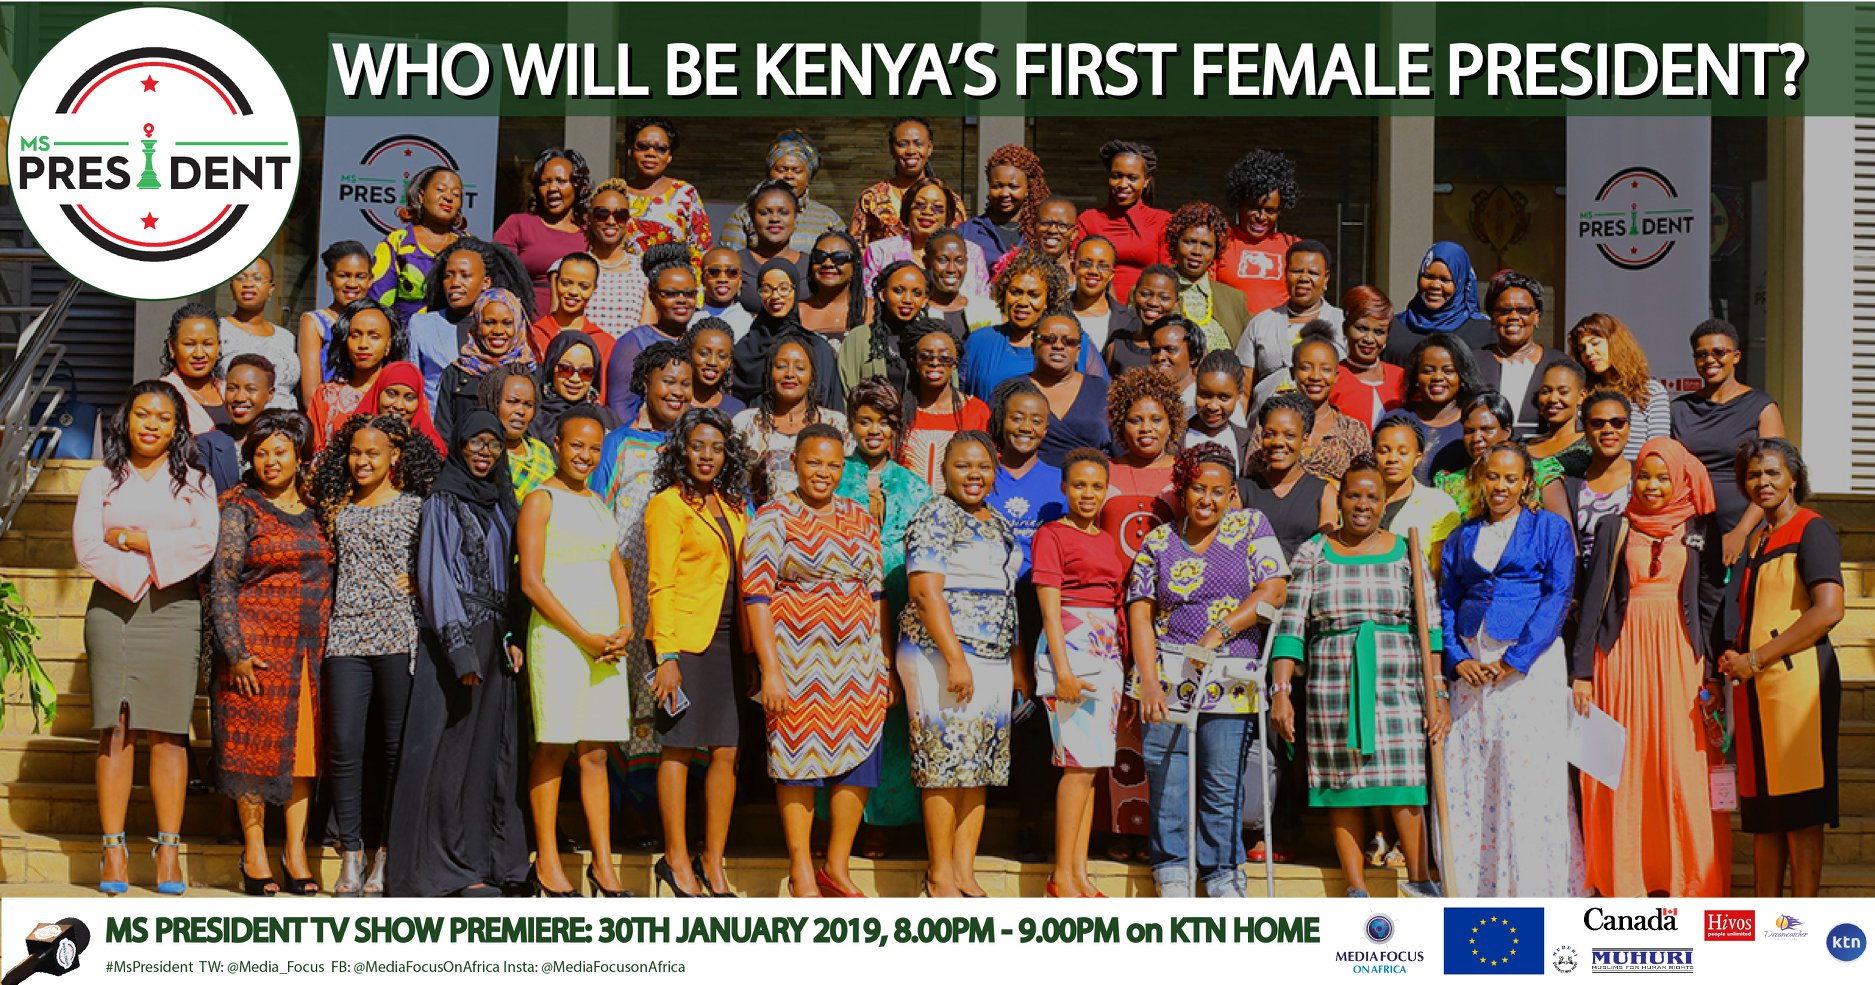 MS PRESIDENT: KENYA'S FIRST REALITY SHOW ON LEADERSHIP PREMIERES